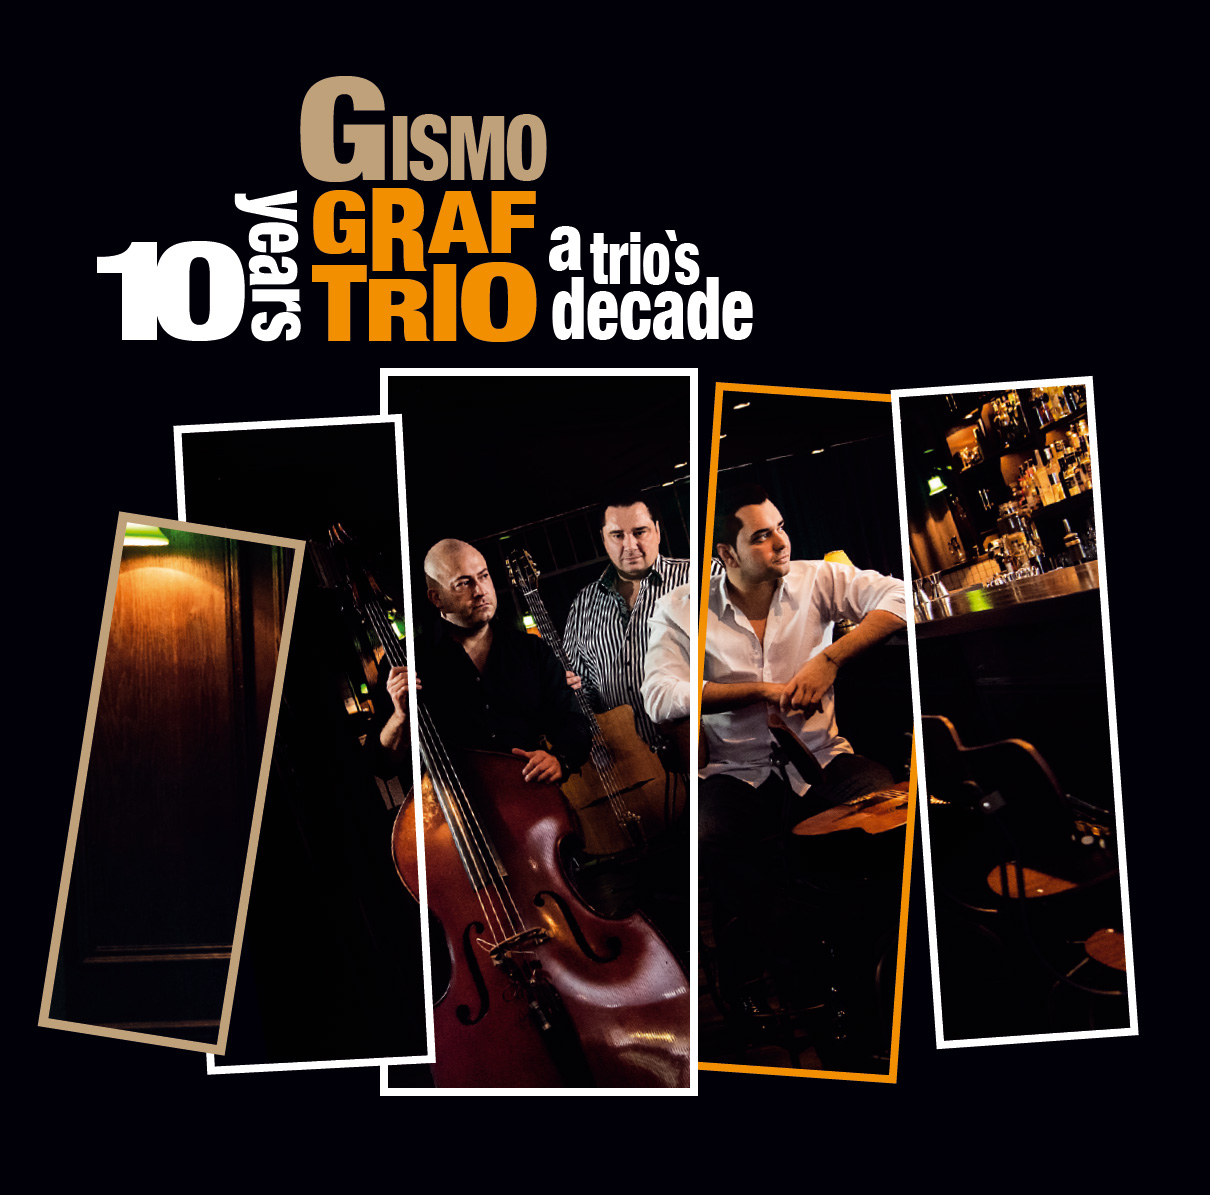 Gismo Graf Trio 10 Years Cover CD Front